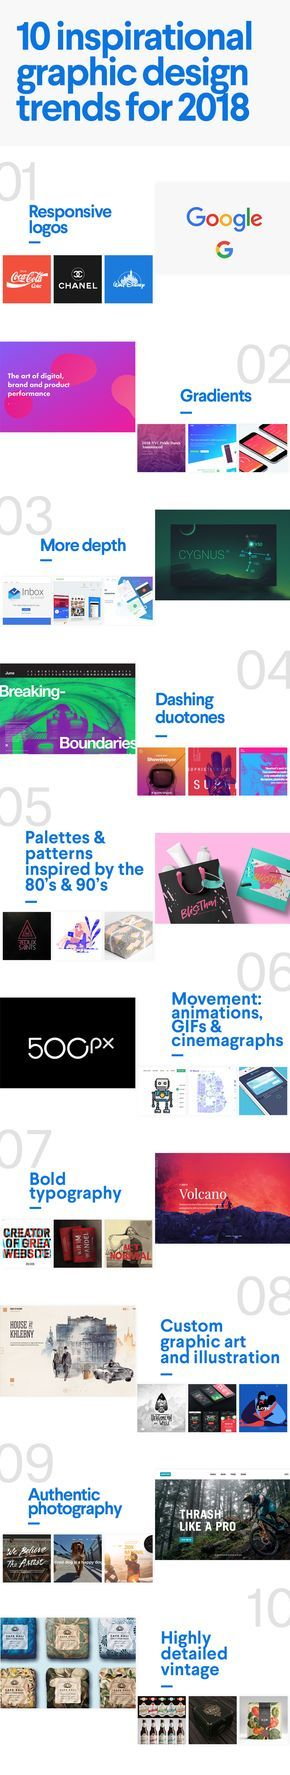 10 inspirational graphic design trends for 2018. From responsive logos to gradients and retro color palettes, as they say everything old is new again. #2018designtrends #2018graphicdesigntrends #graphicdesigntrends